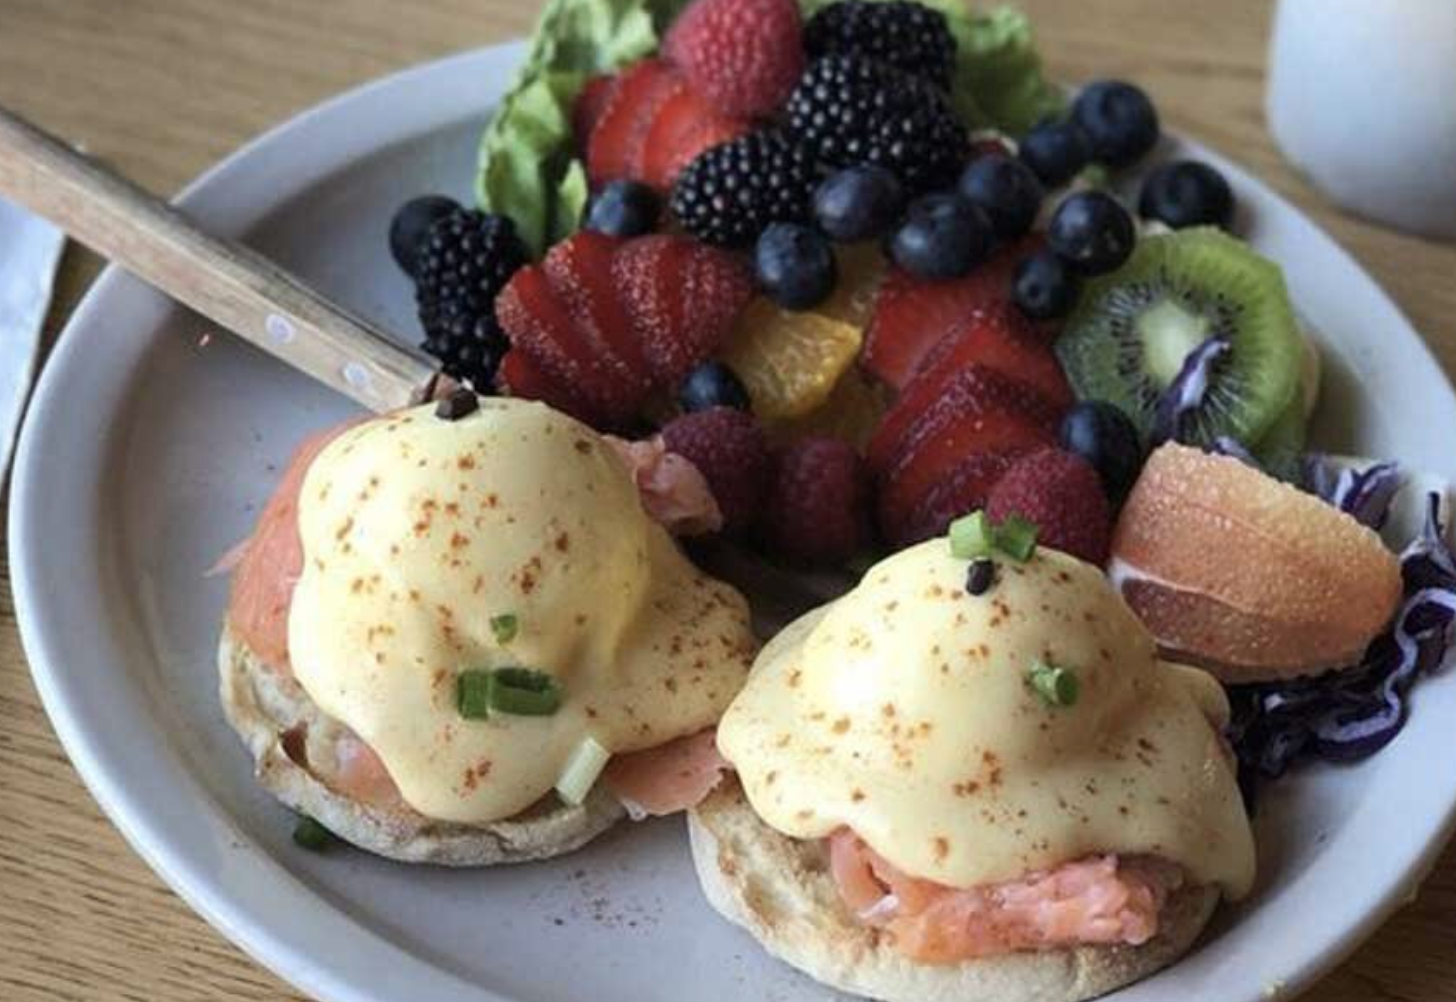 A Salmon Benedict with a side of assorted fruit on a white plate.